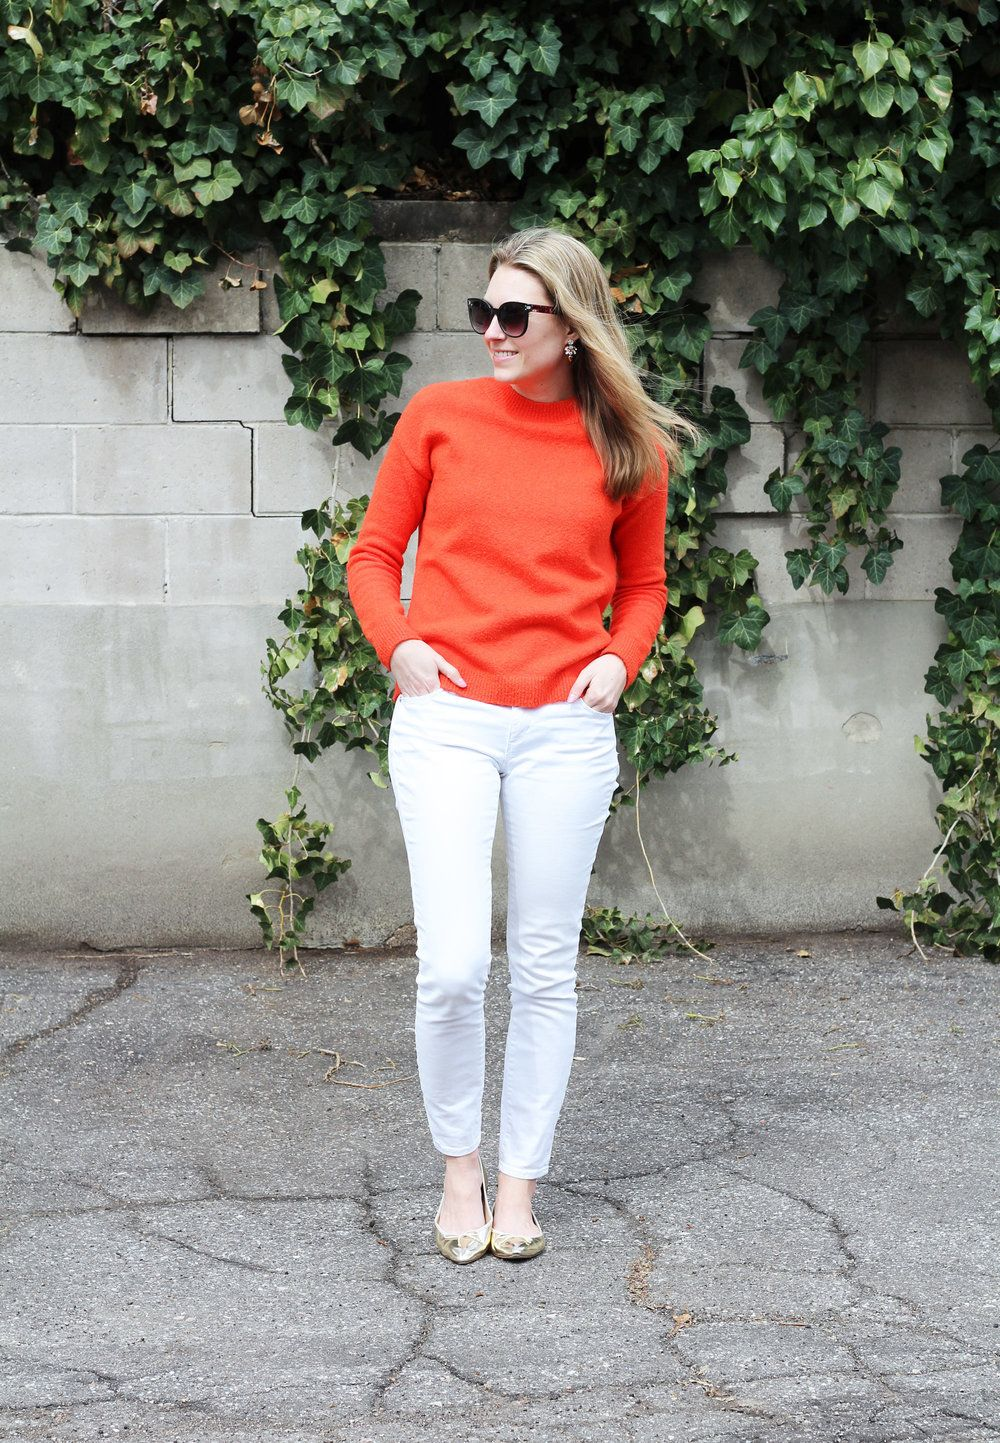 Simple but super cute look. Love the bright sweater with the white bottoms and bright flats.